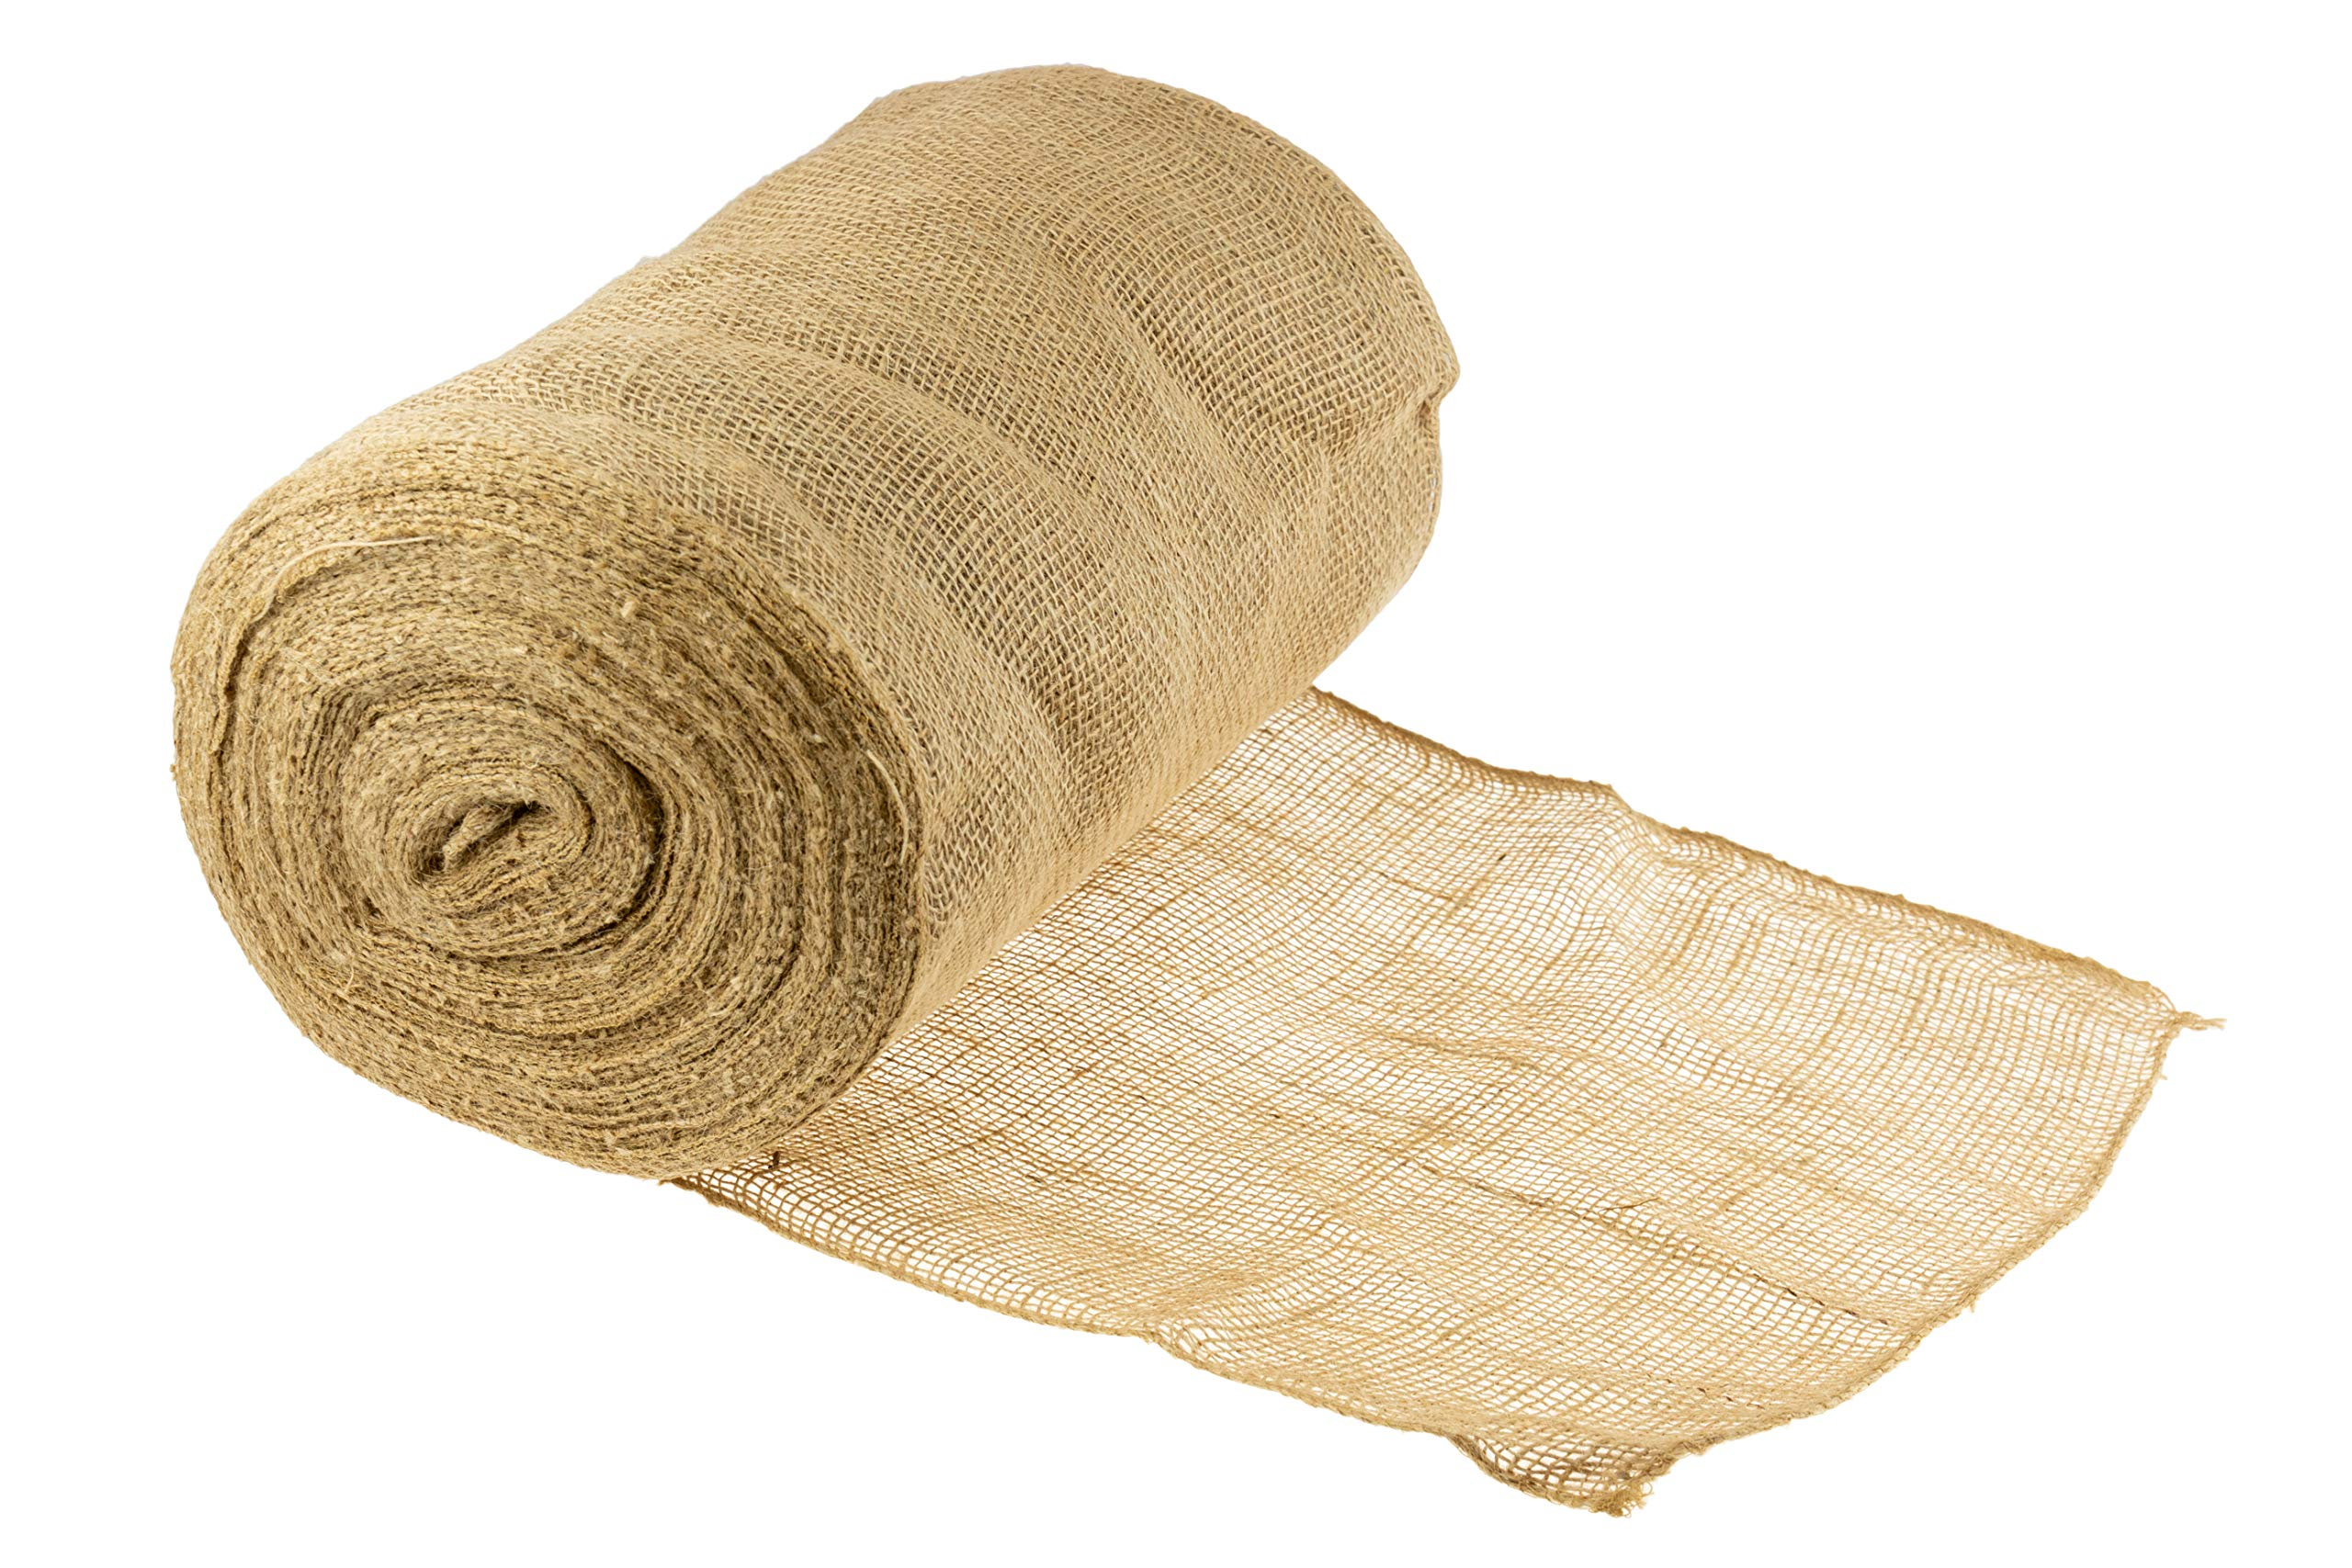 Clever Creations Natural Rustic Burlap | Finished Edges | Perfect Decor for Weddings, Table Runners, Gardens DIY Crafts | 12'' x 40 Yards |Create Your Own Burlap Ribbons, Curtains, Fabric, Tablecloth